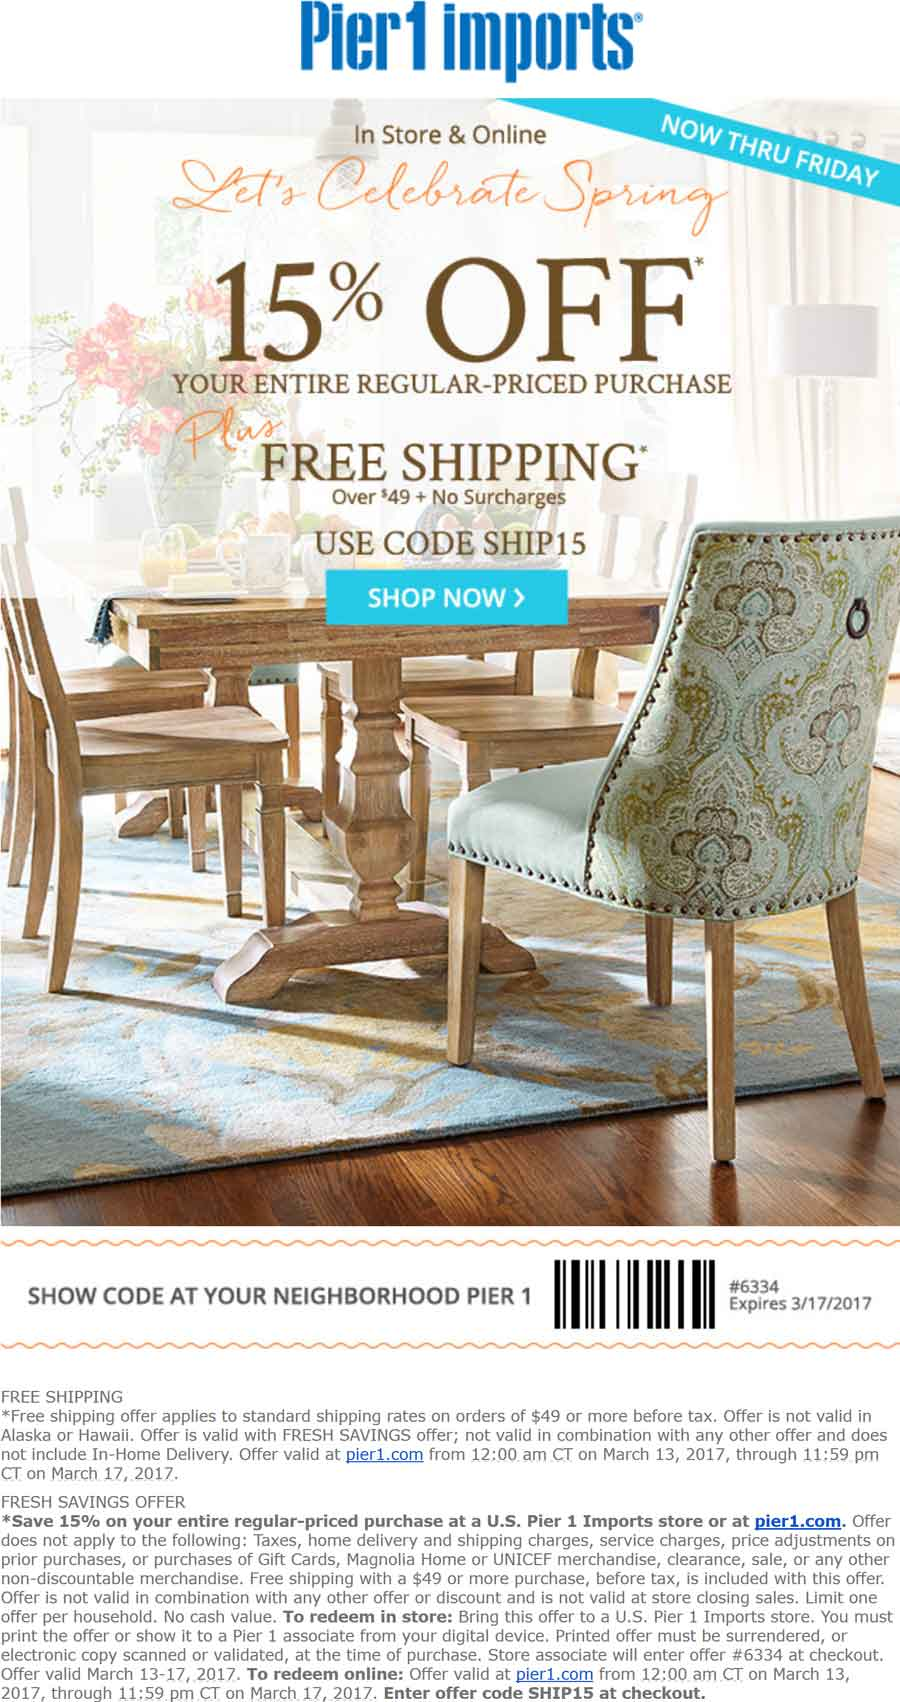 Pier 1 Coupon December 2018 15% off at Pier 1 Imports, or online via promo code SHIP15